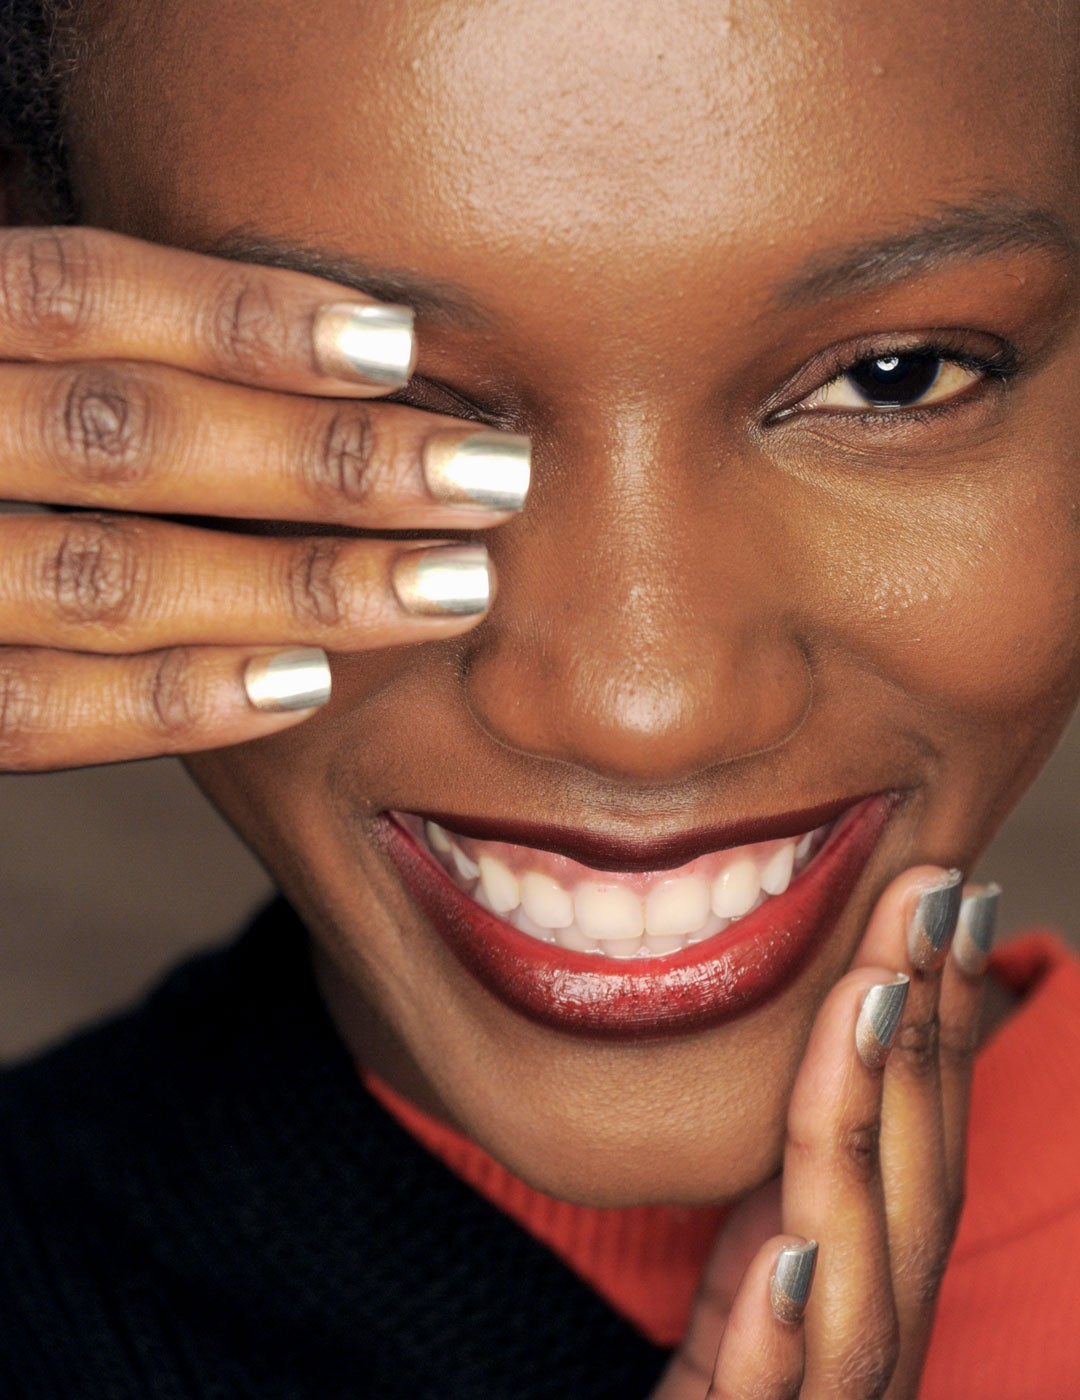 How To D.I.Y. Your Own Nail Polish Shade